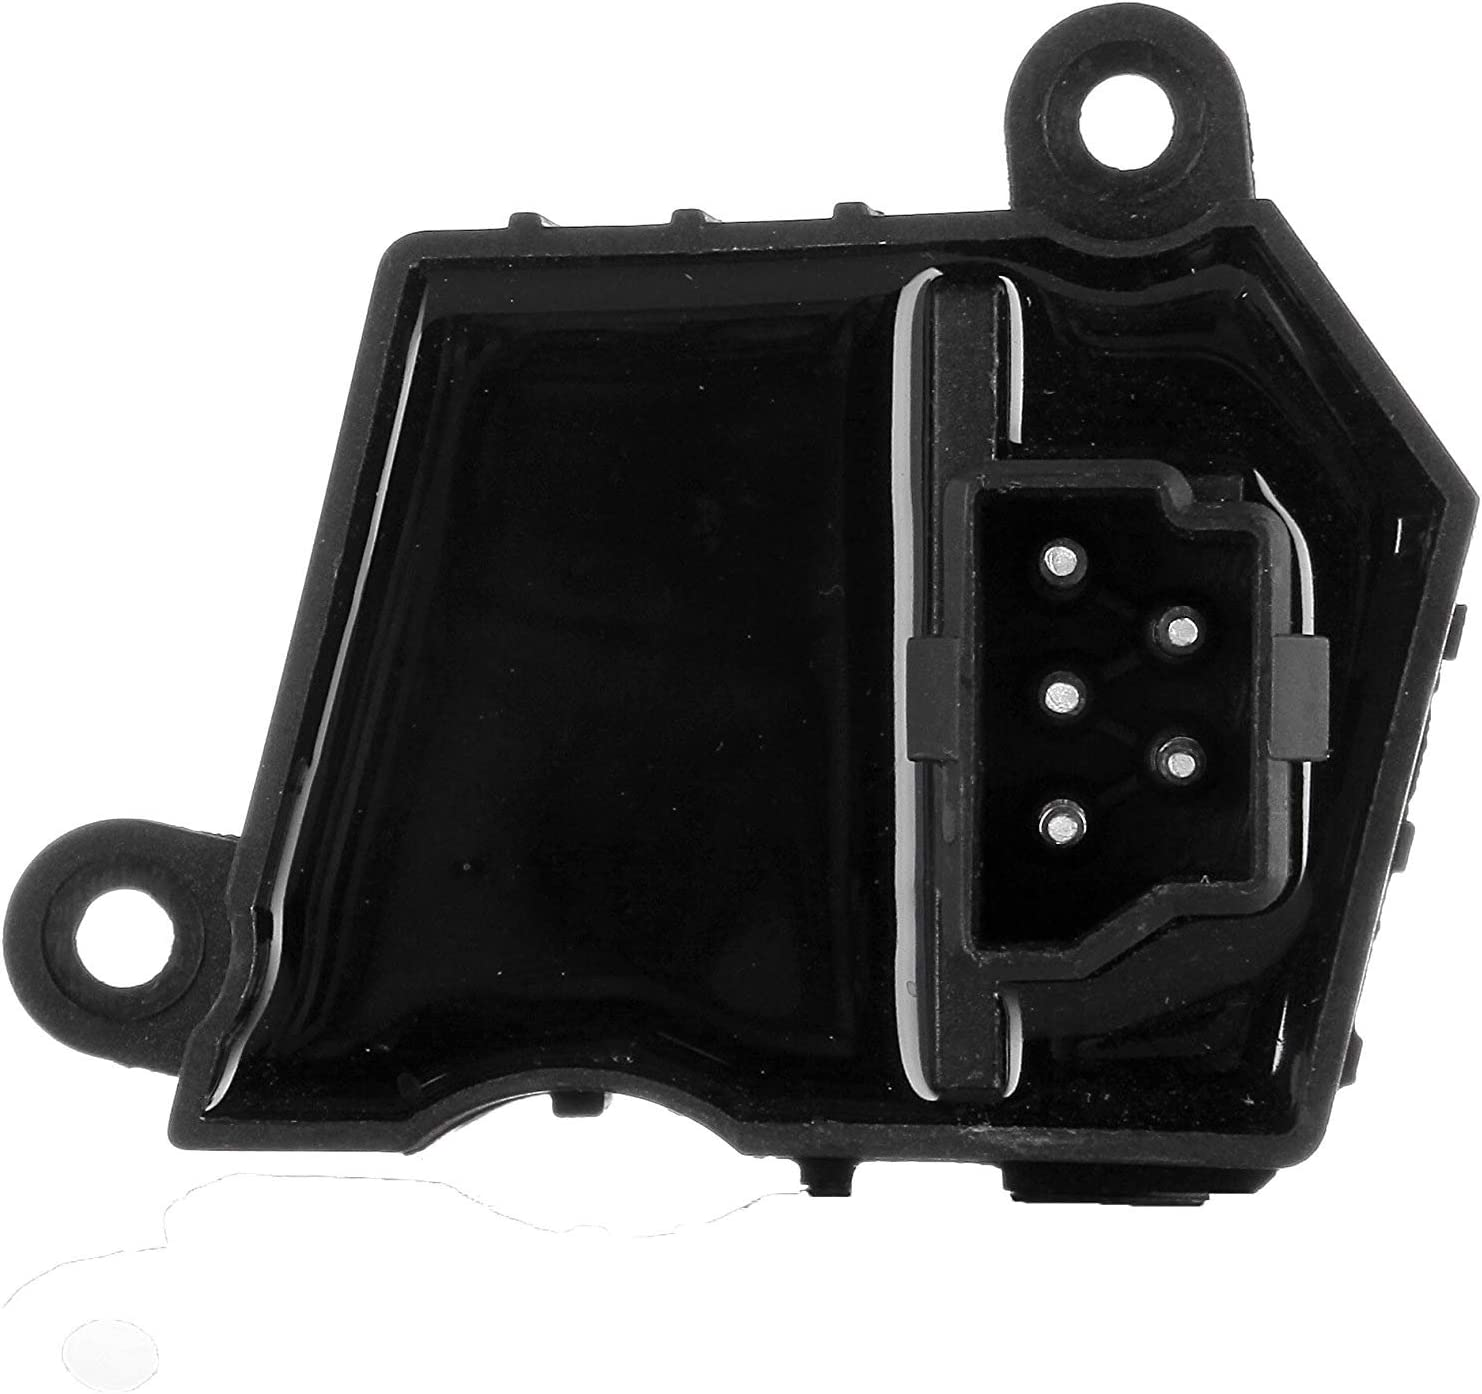 Hytec Automotive 135025 Water Pump 135025H AW9370